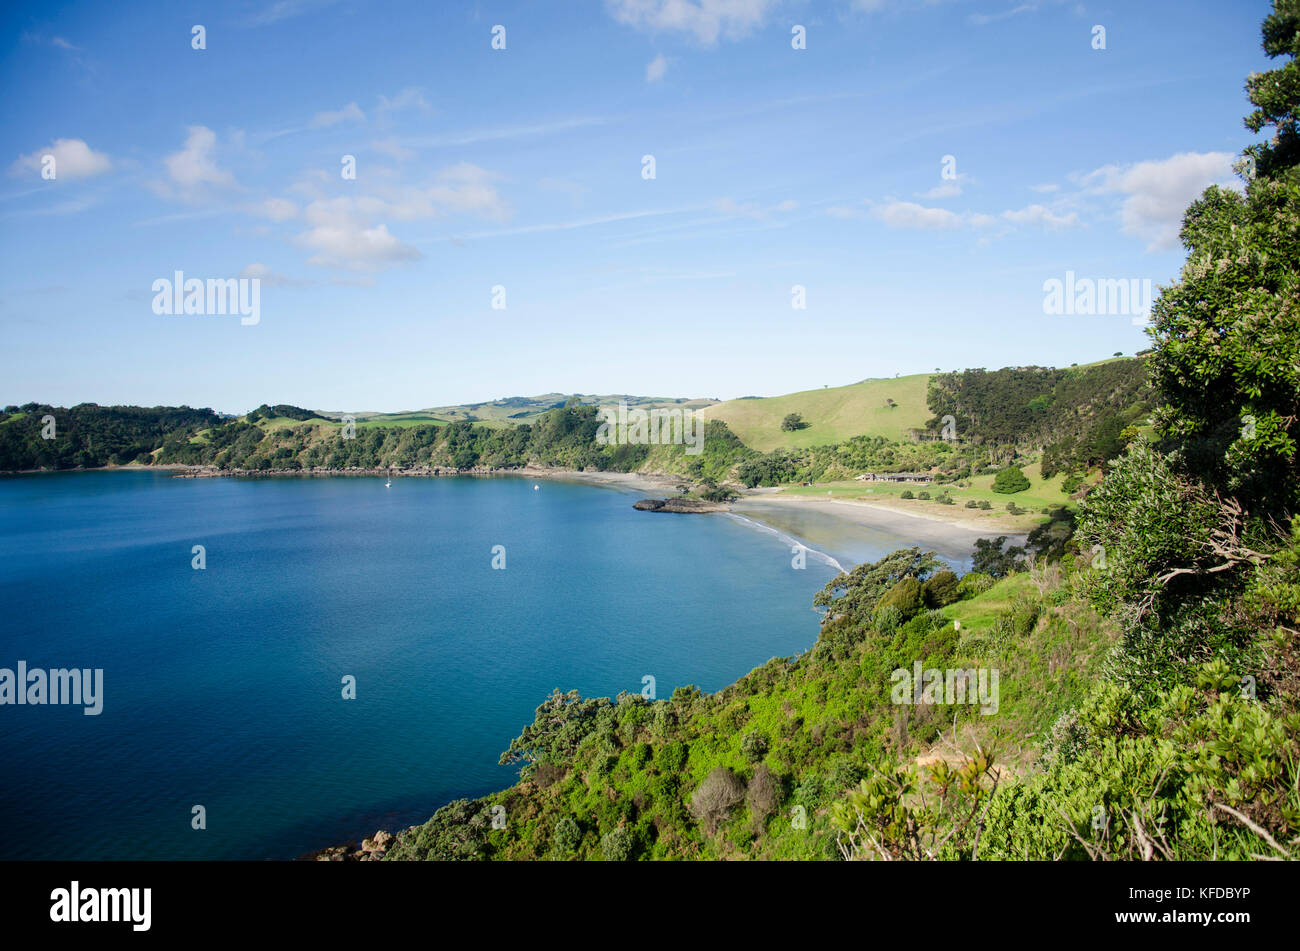 Pie melon beach bay in Waiheke Island, Hauraki Gulf, New Zealand - Stock Image